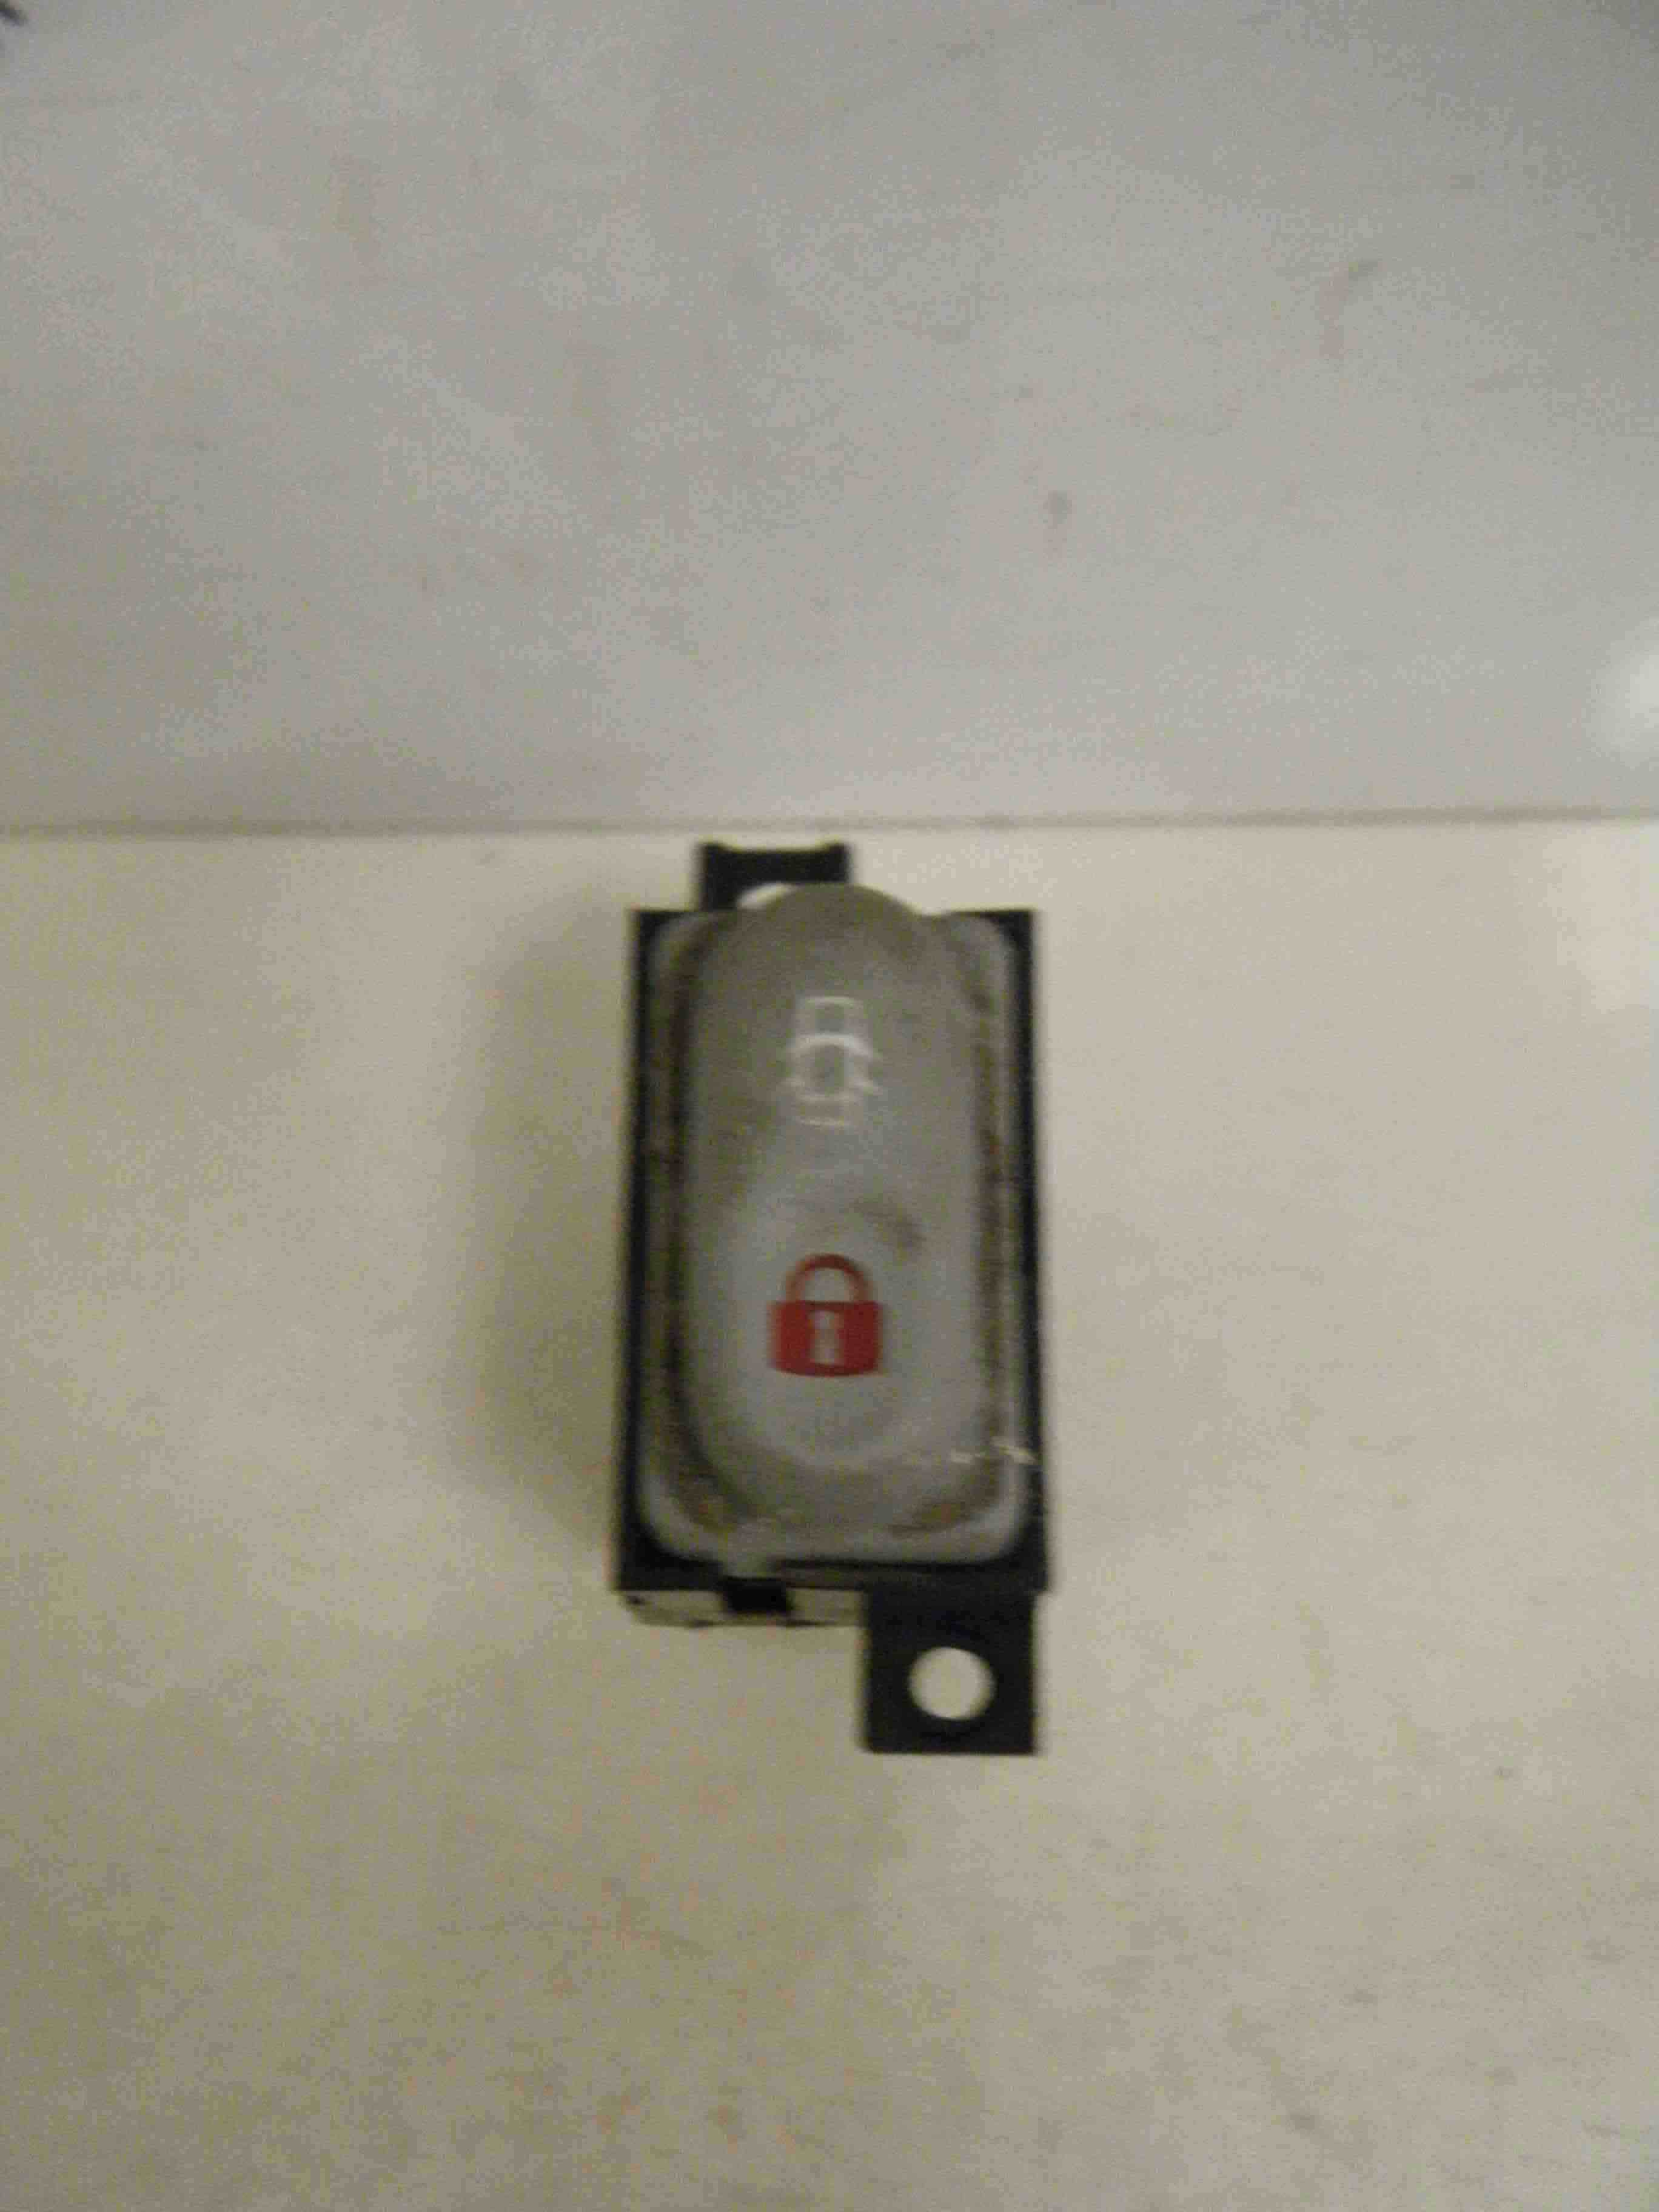 Renault Espace 1997-2003 Central Locking Switch Button 6025308163